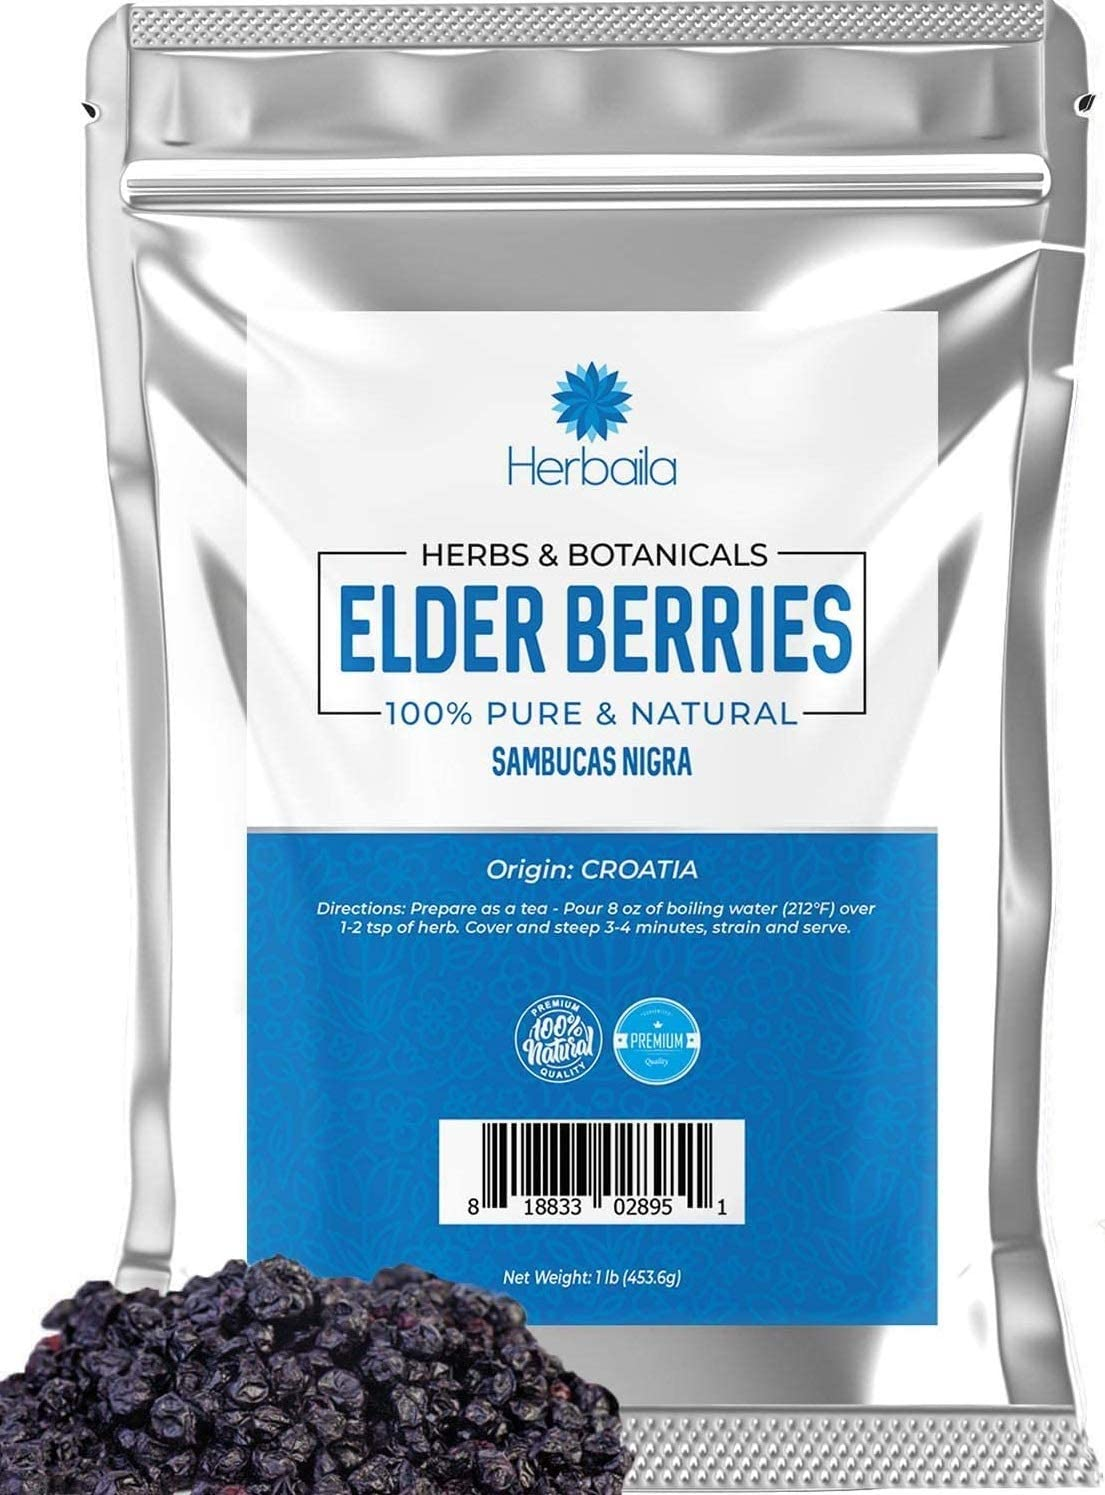 Elderberries, Whole Dried 16oz, 1 lb. Promotes Immune Health, Use Elder Berry Fruit for Syrup, Black Tea, Gummy Treats, Bulk Resealable Bag